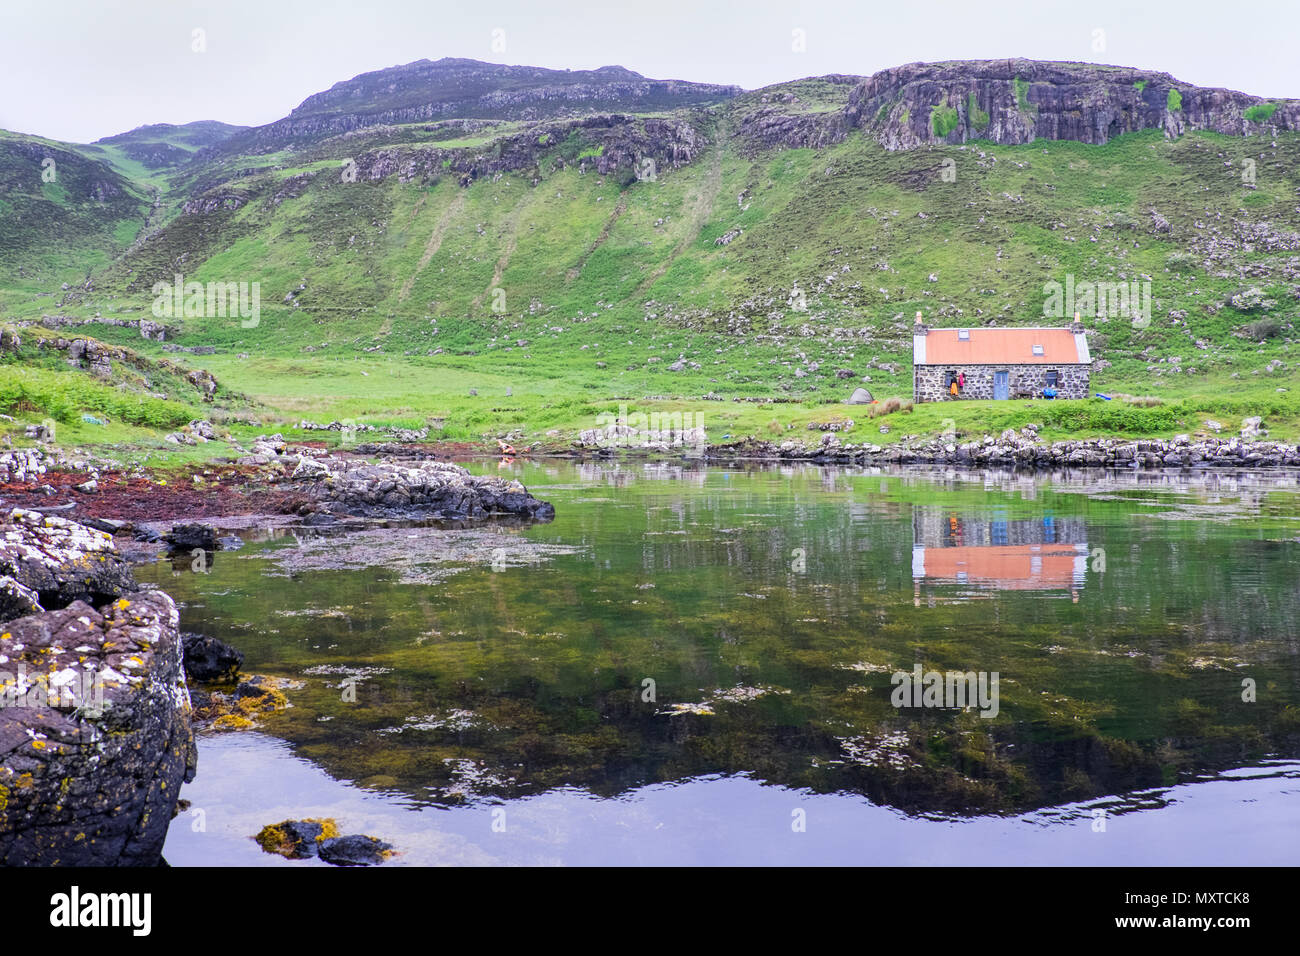 Remote cottage / bothy on The island of Ulva on the west coast of Scotland - Stock Image